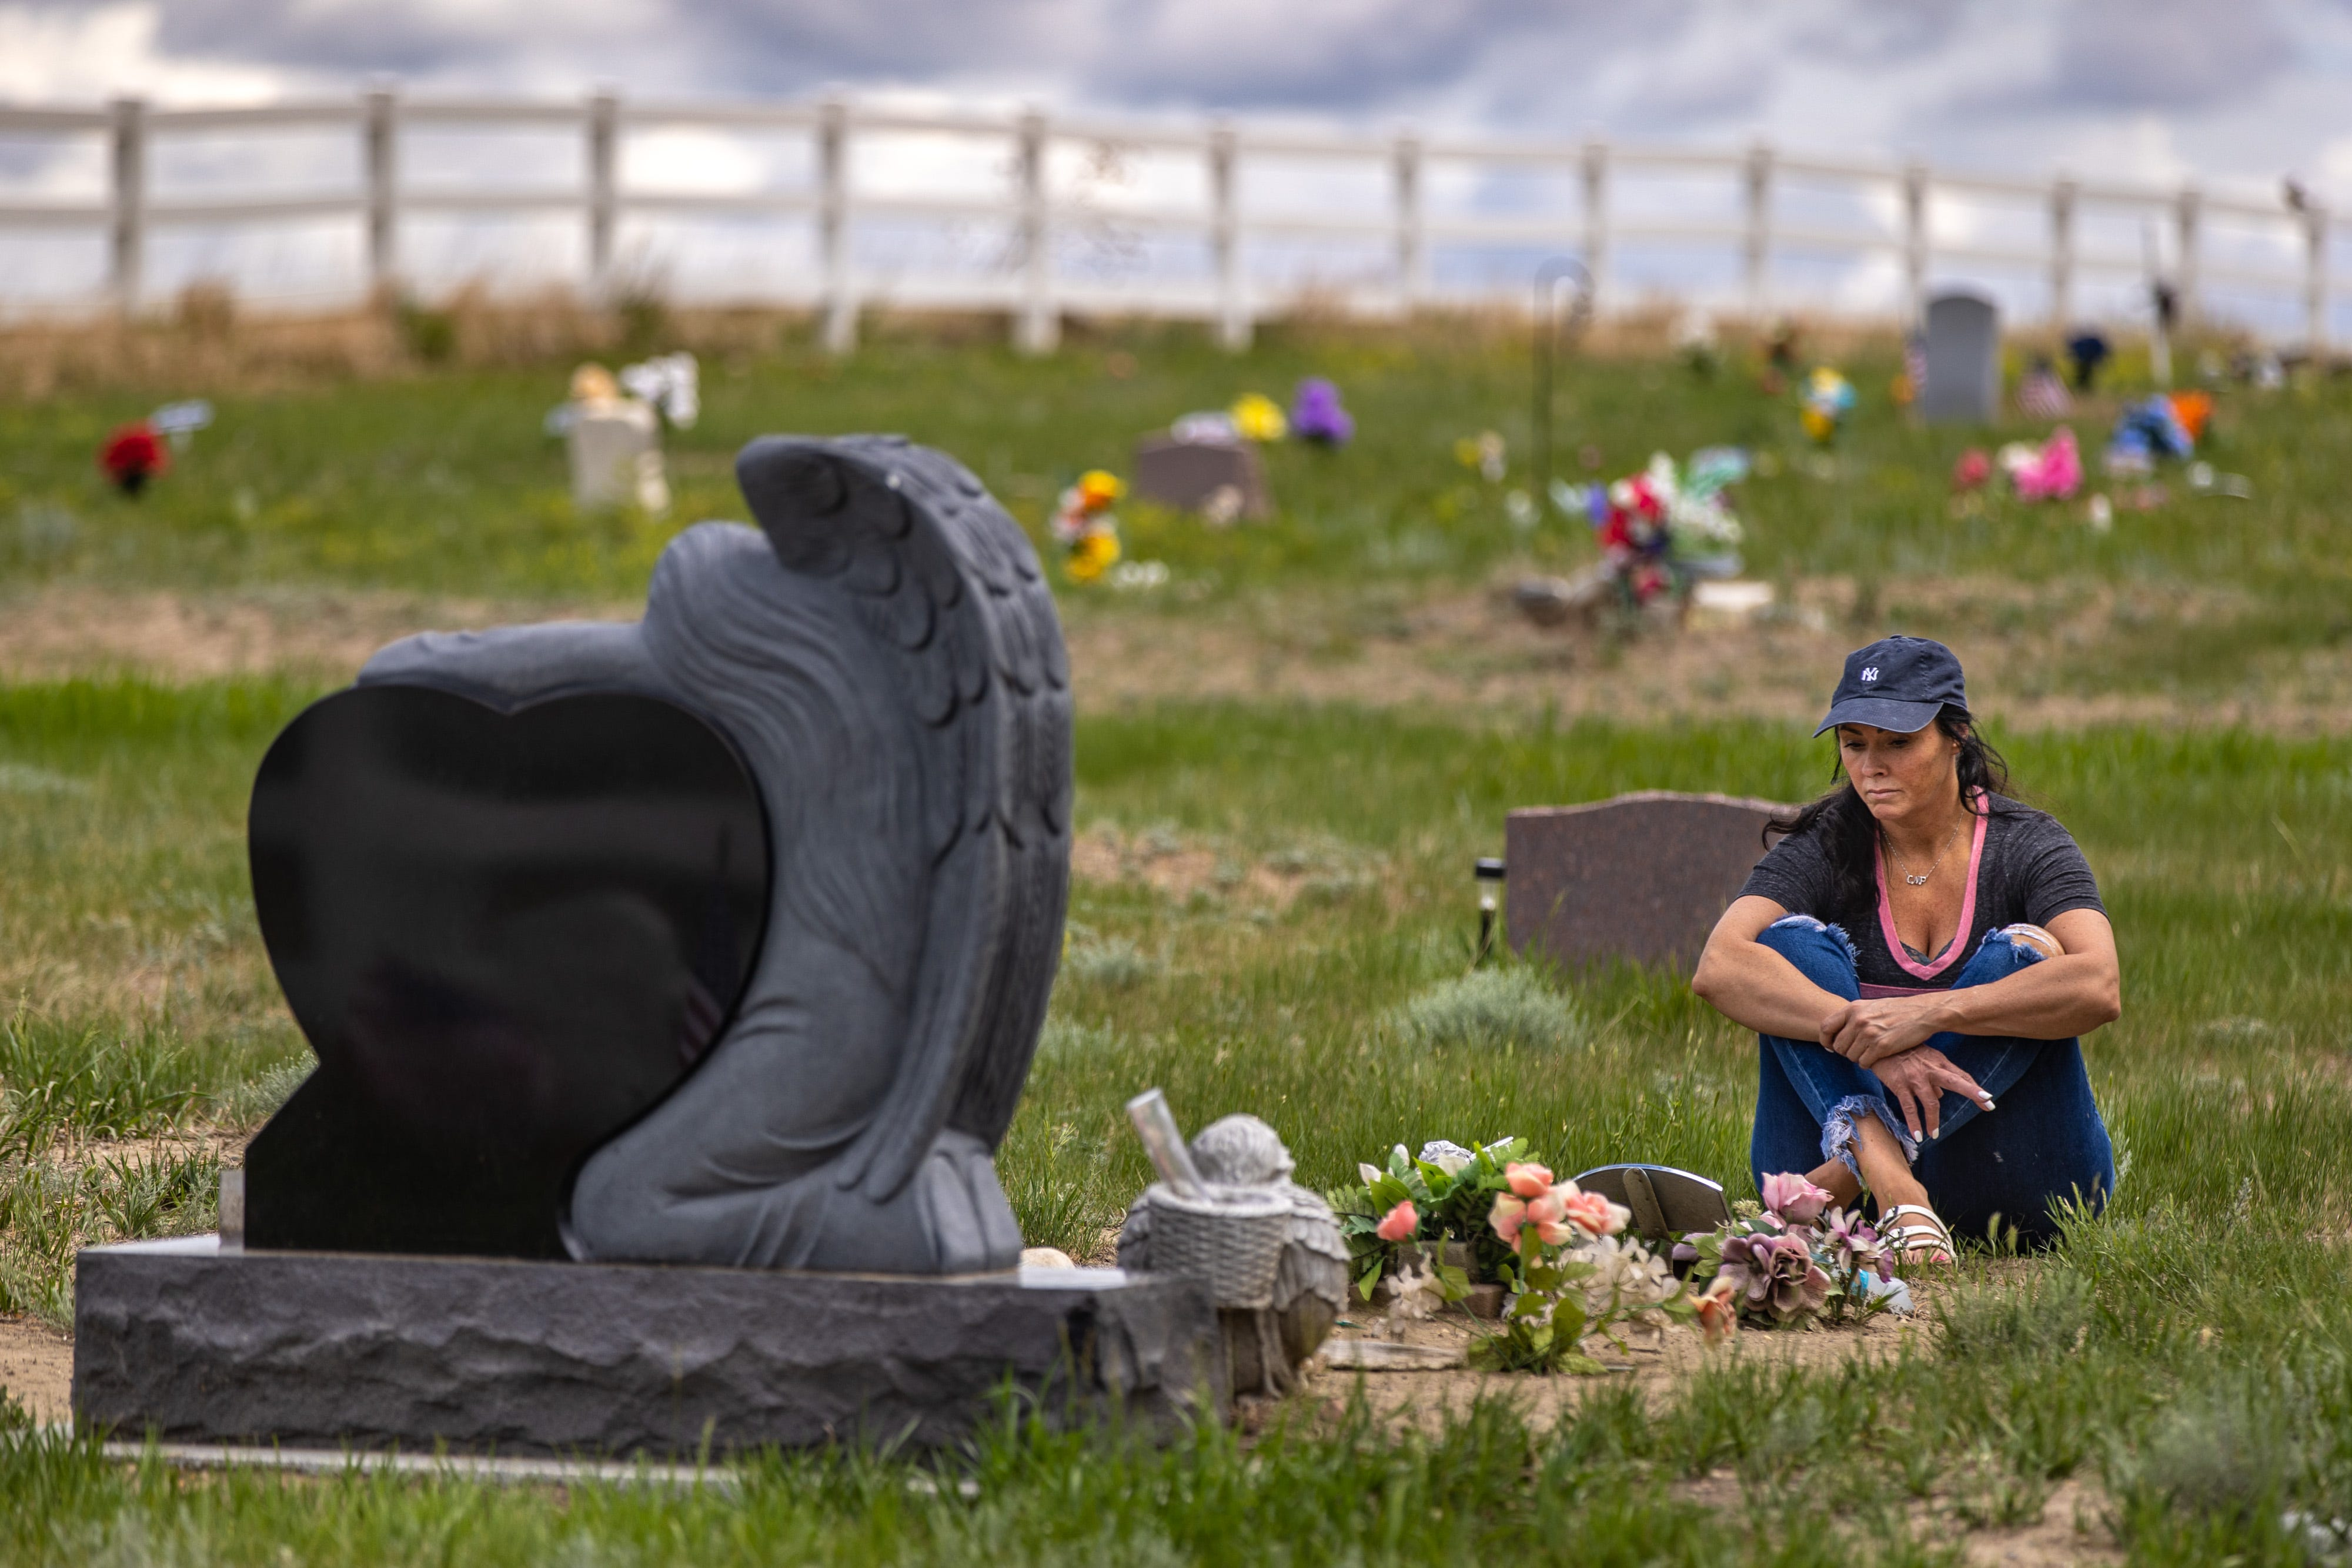 Rhonda Packineau visits the grave of her daughter, Cheyenne, in the Parshall, N.D., Meadows Cemetery. The 21-year-old died of a drug overdose in a Bismarck hotel room in 2018.